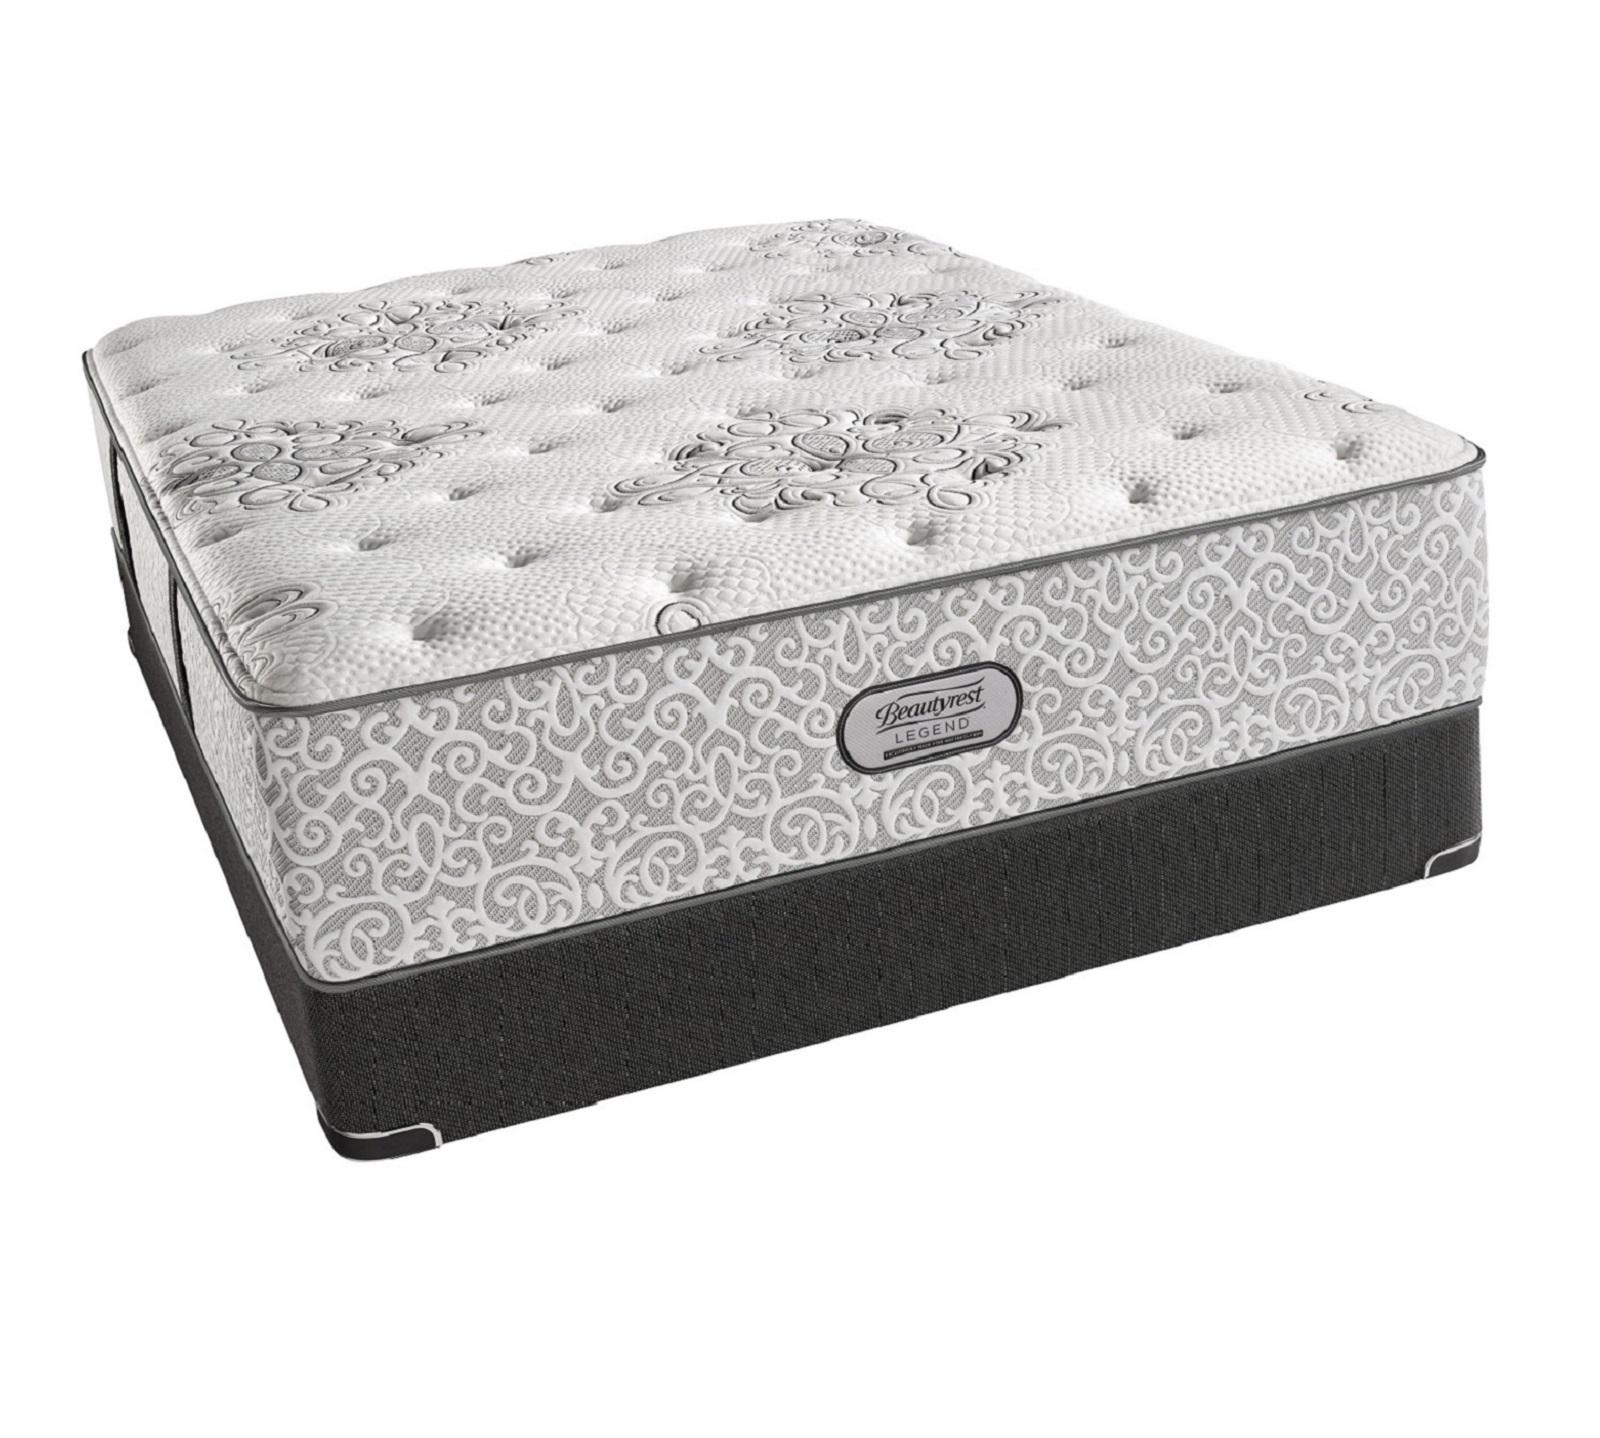 legend whitfield 15 plush mattress - Simmons Beautyrest Mattress